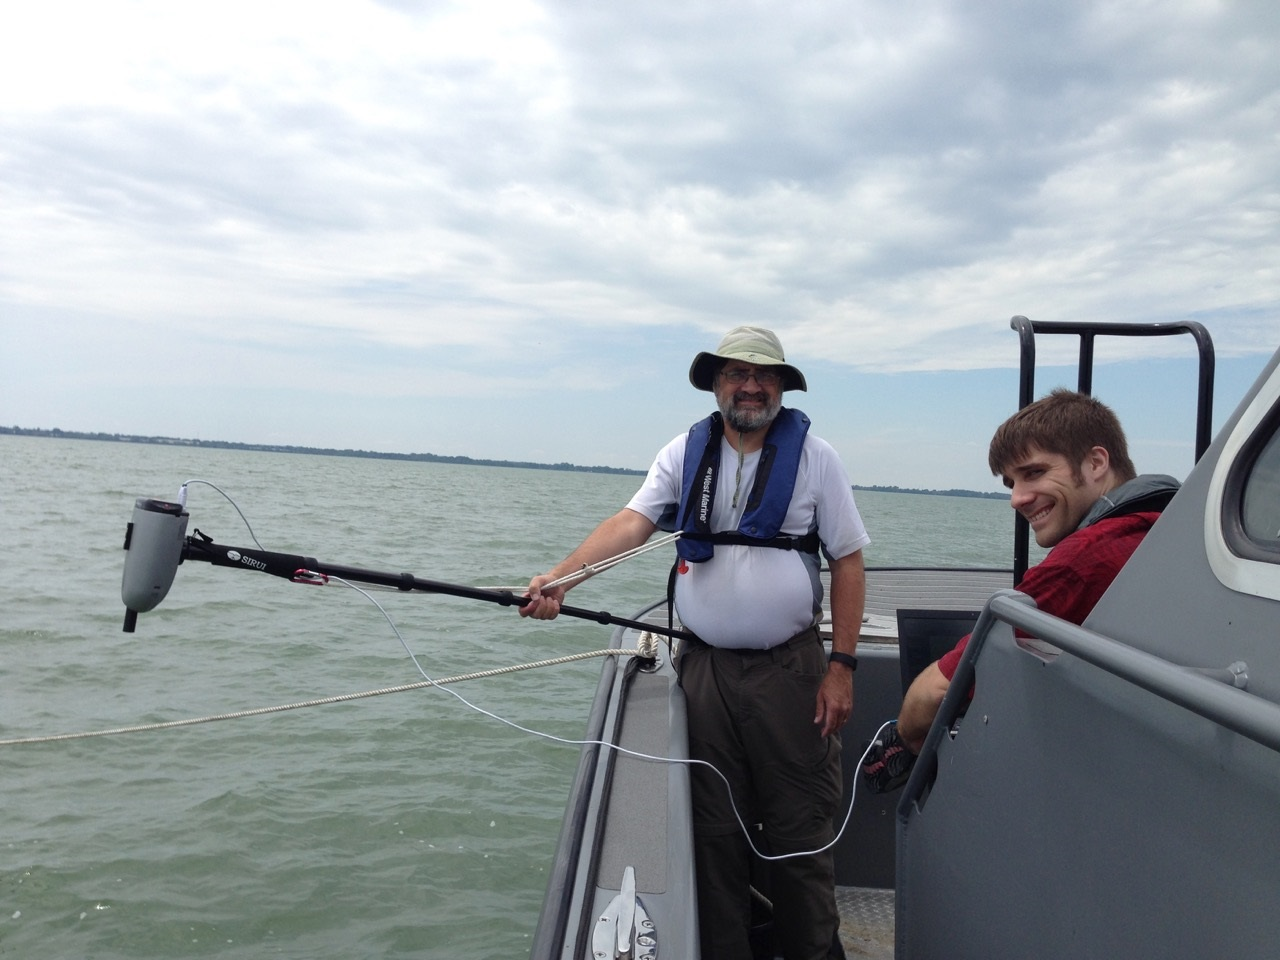 Kent State University Geology Professor Joseph Ortiz, Ph.D., and student Andrew Congdon collecting measurements of surface reflectance in Sandusky Bay (Photo credit: Sunny Dickerson, Bowling Green State University)